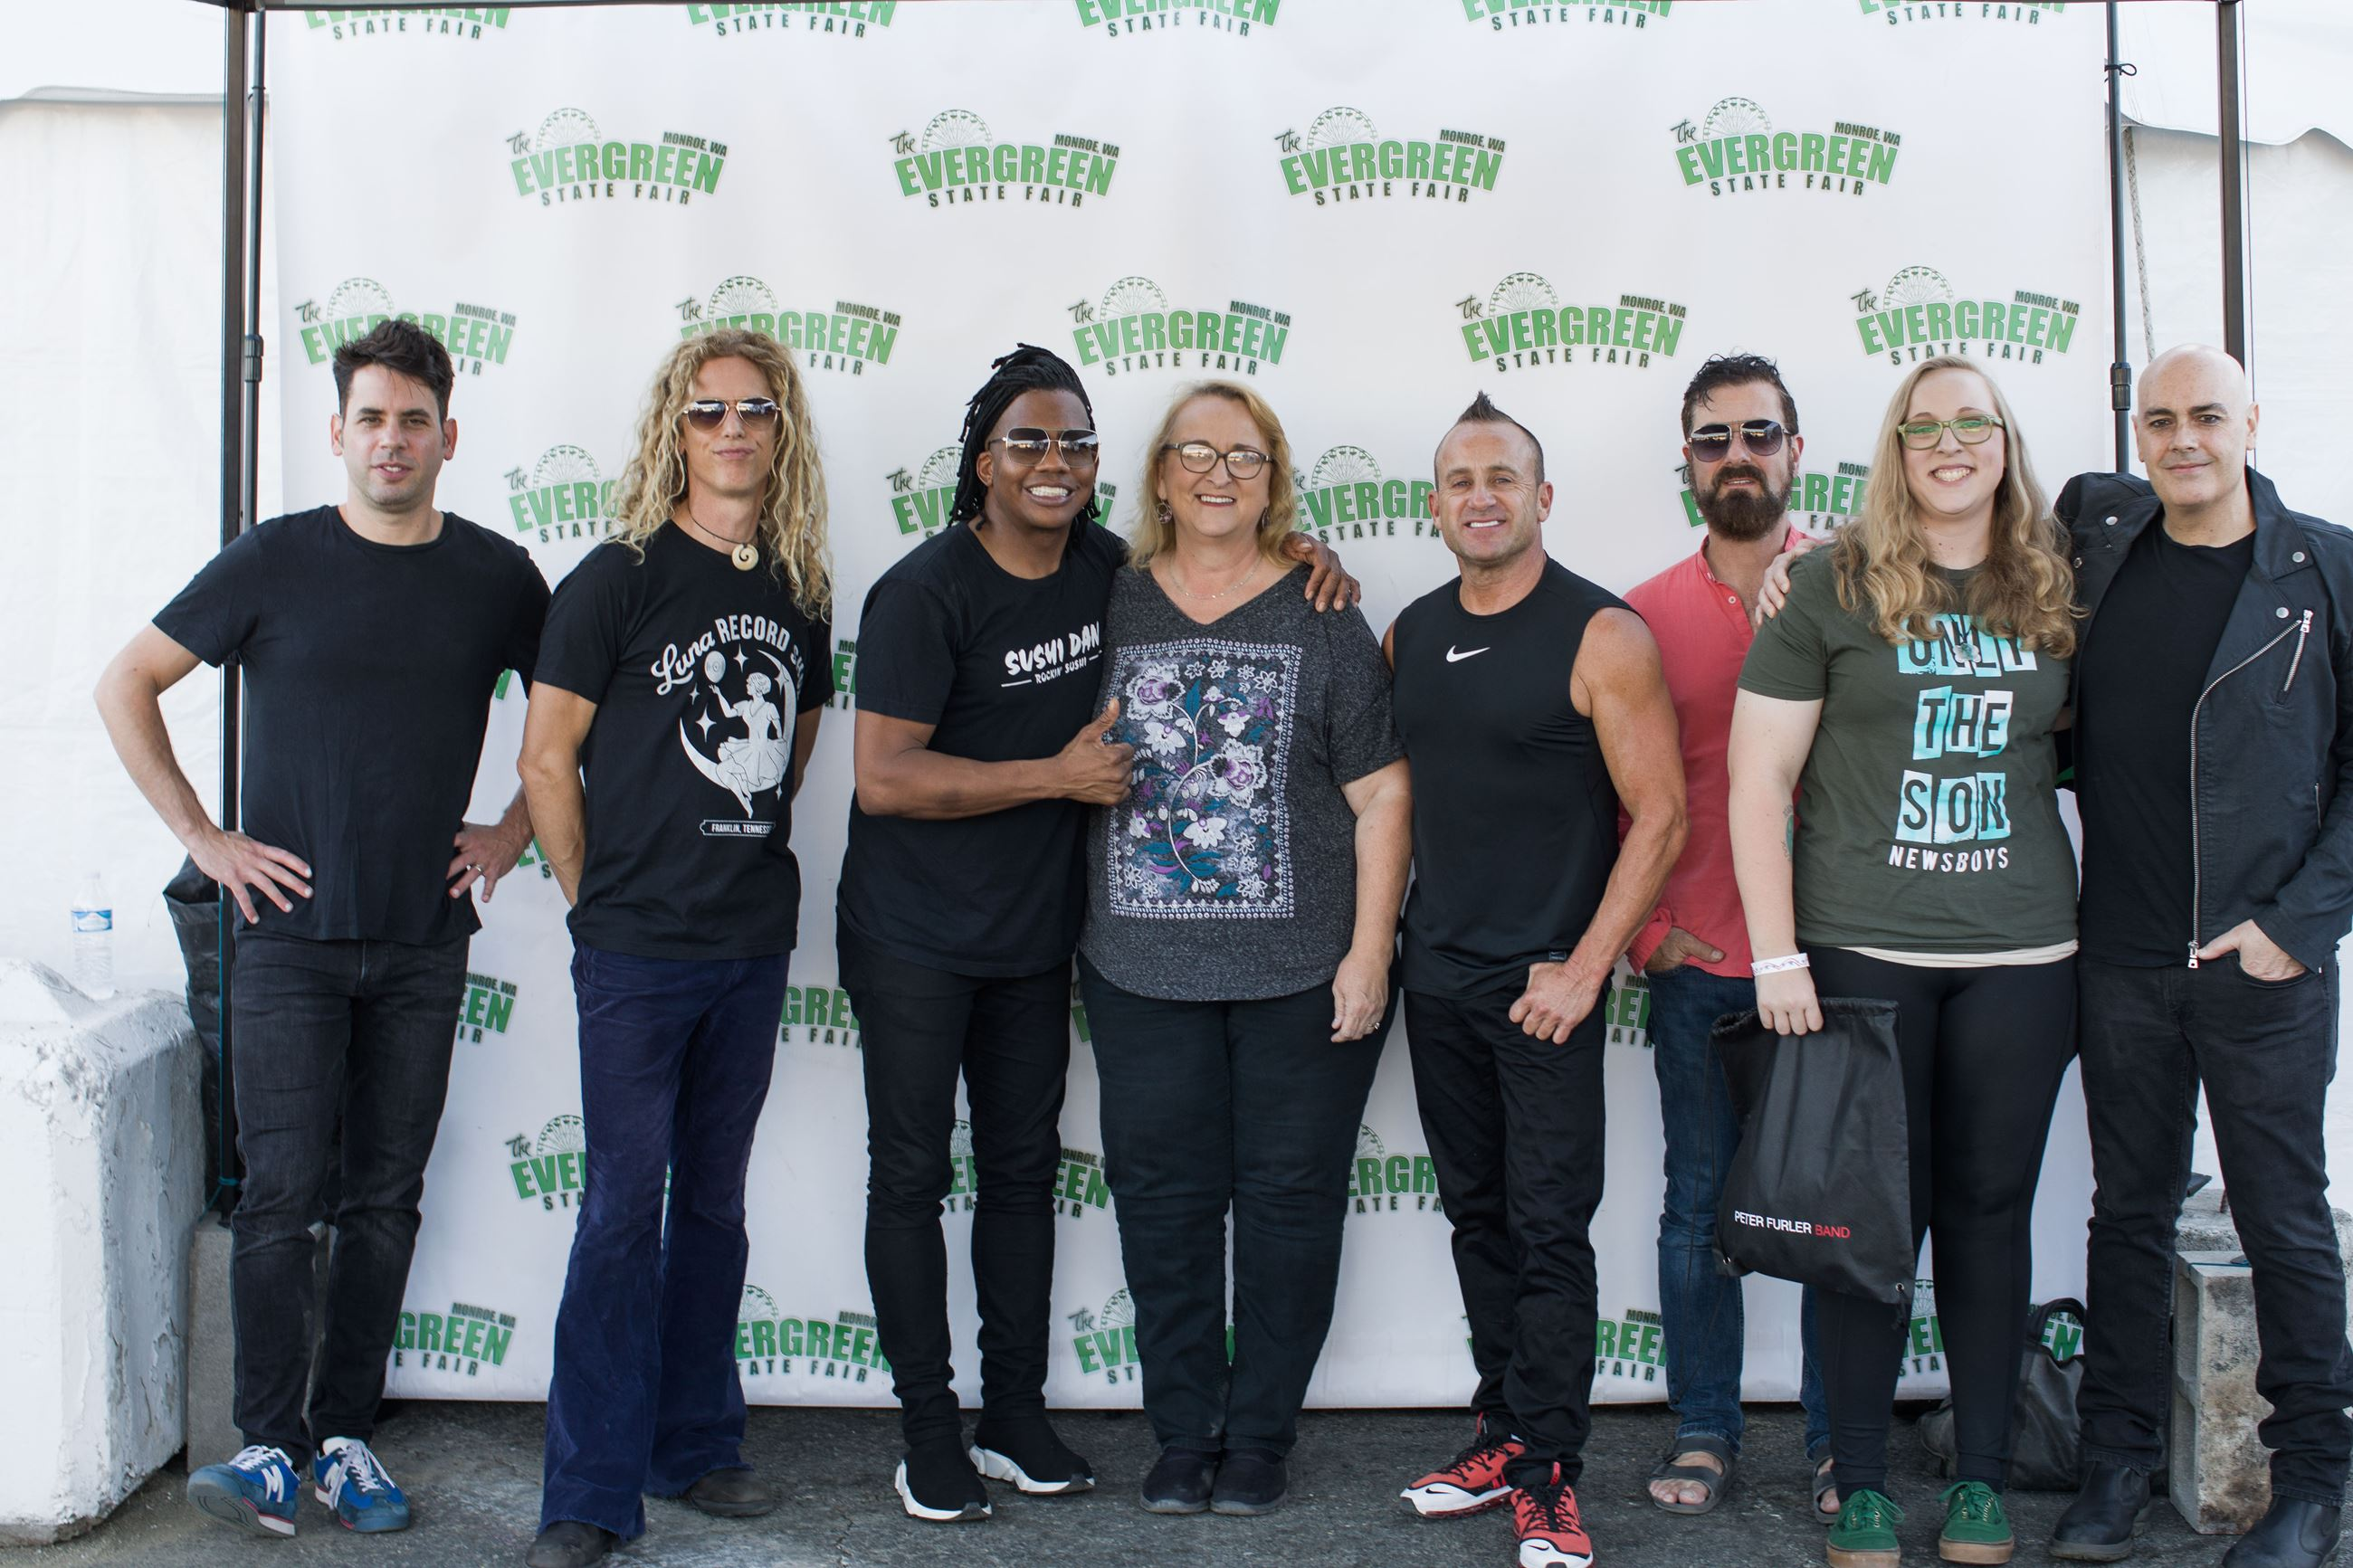 Newsboys Meet and greet